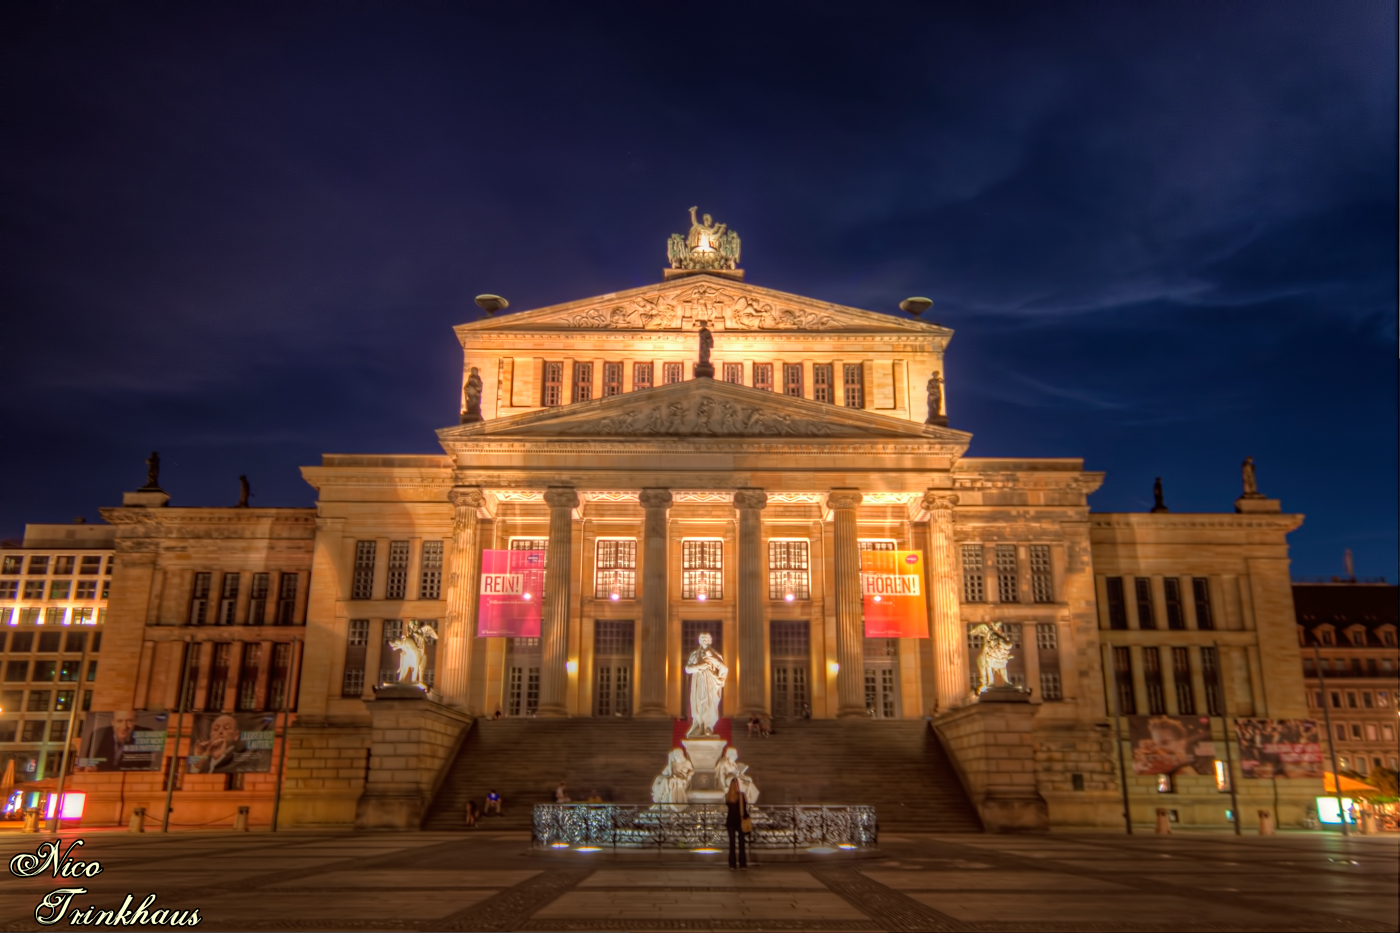 Konzerthaus Berlin by night